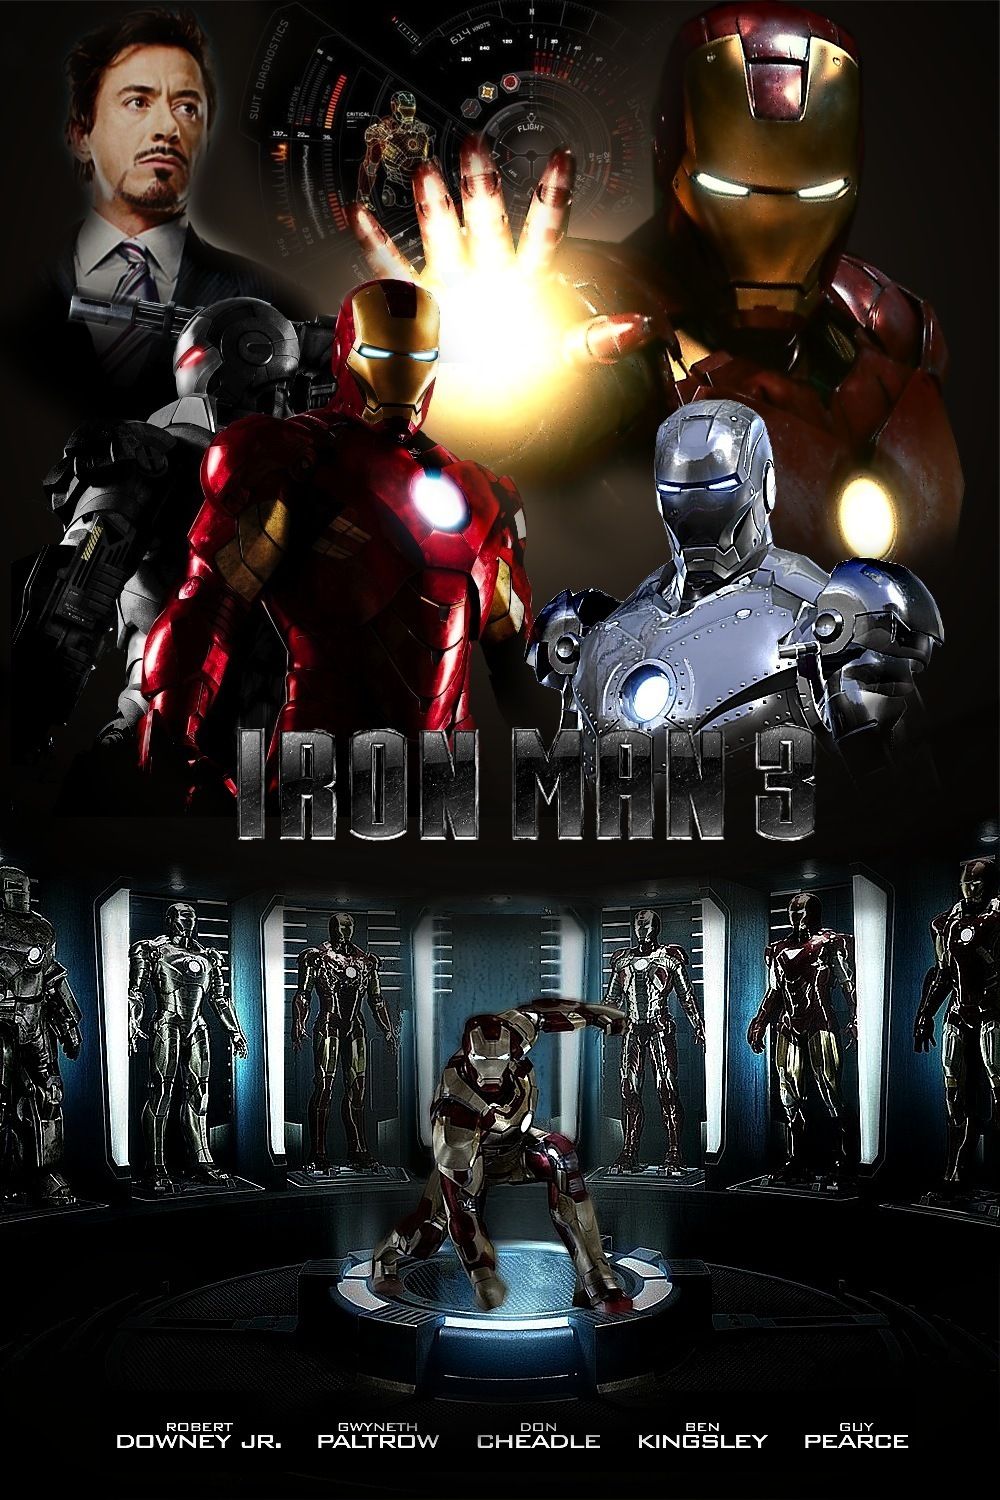 Iron man 3 release date